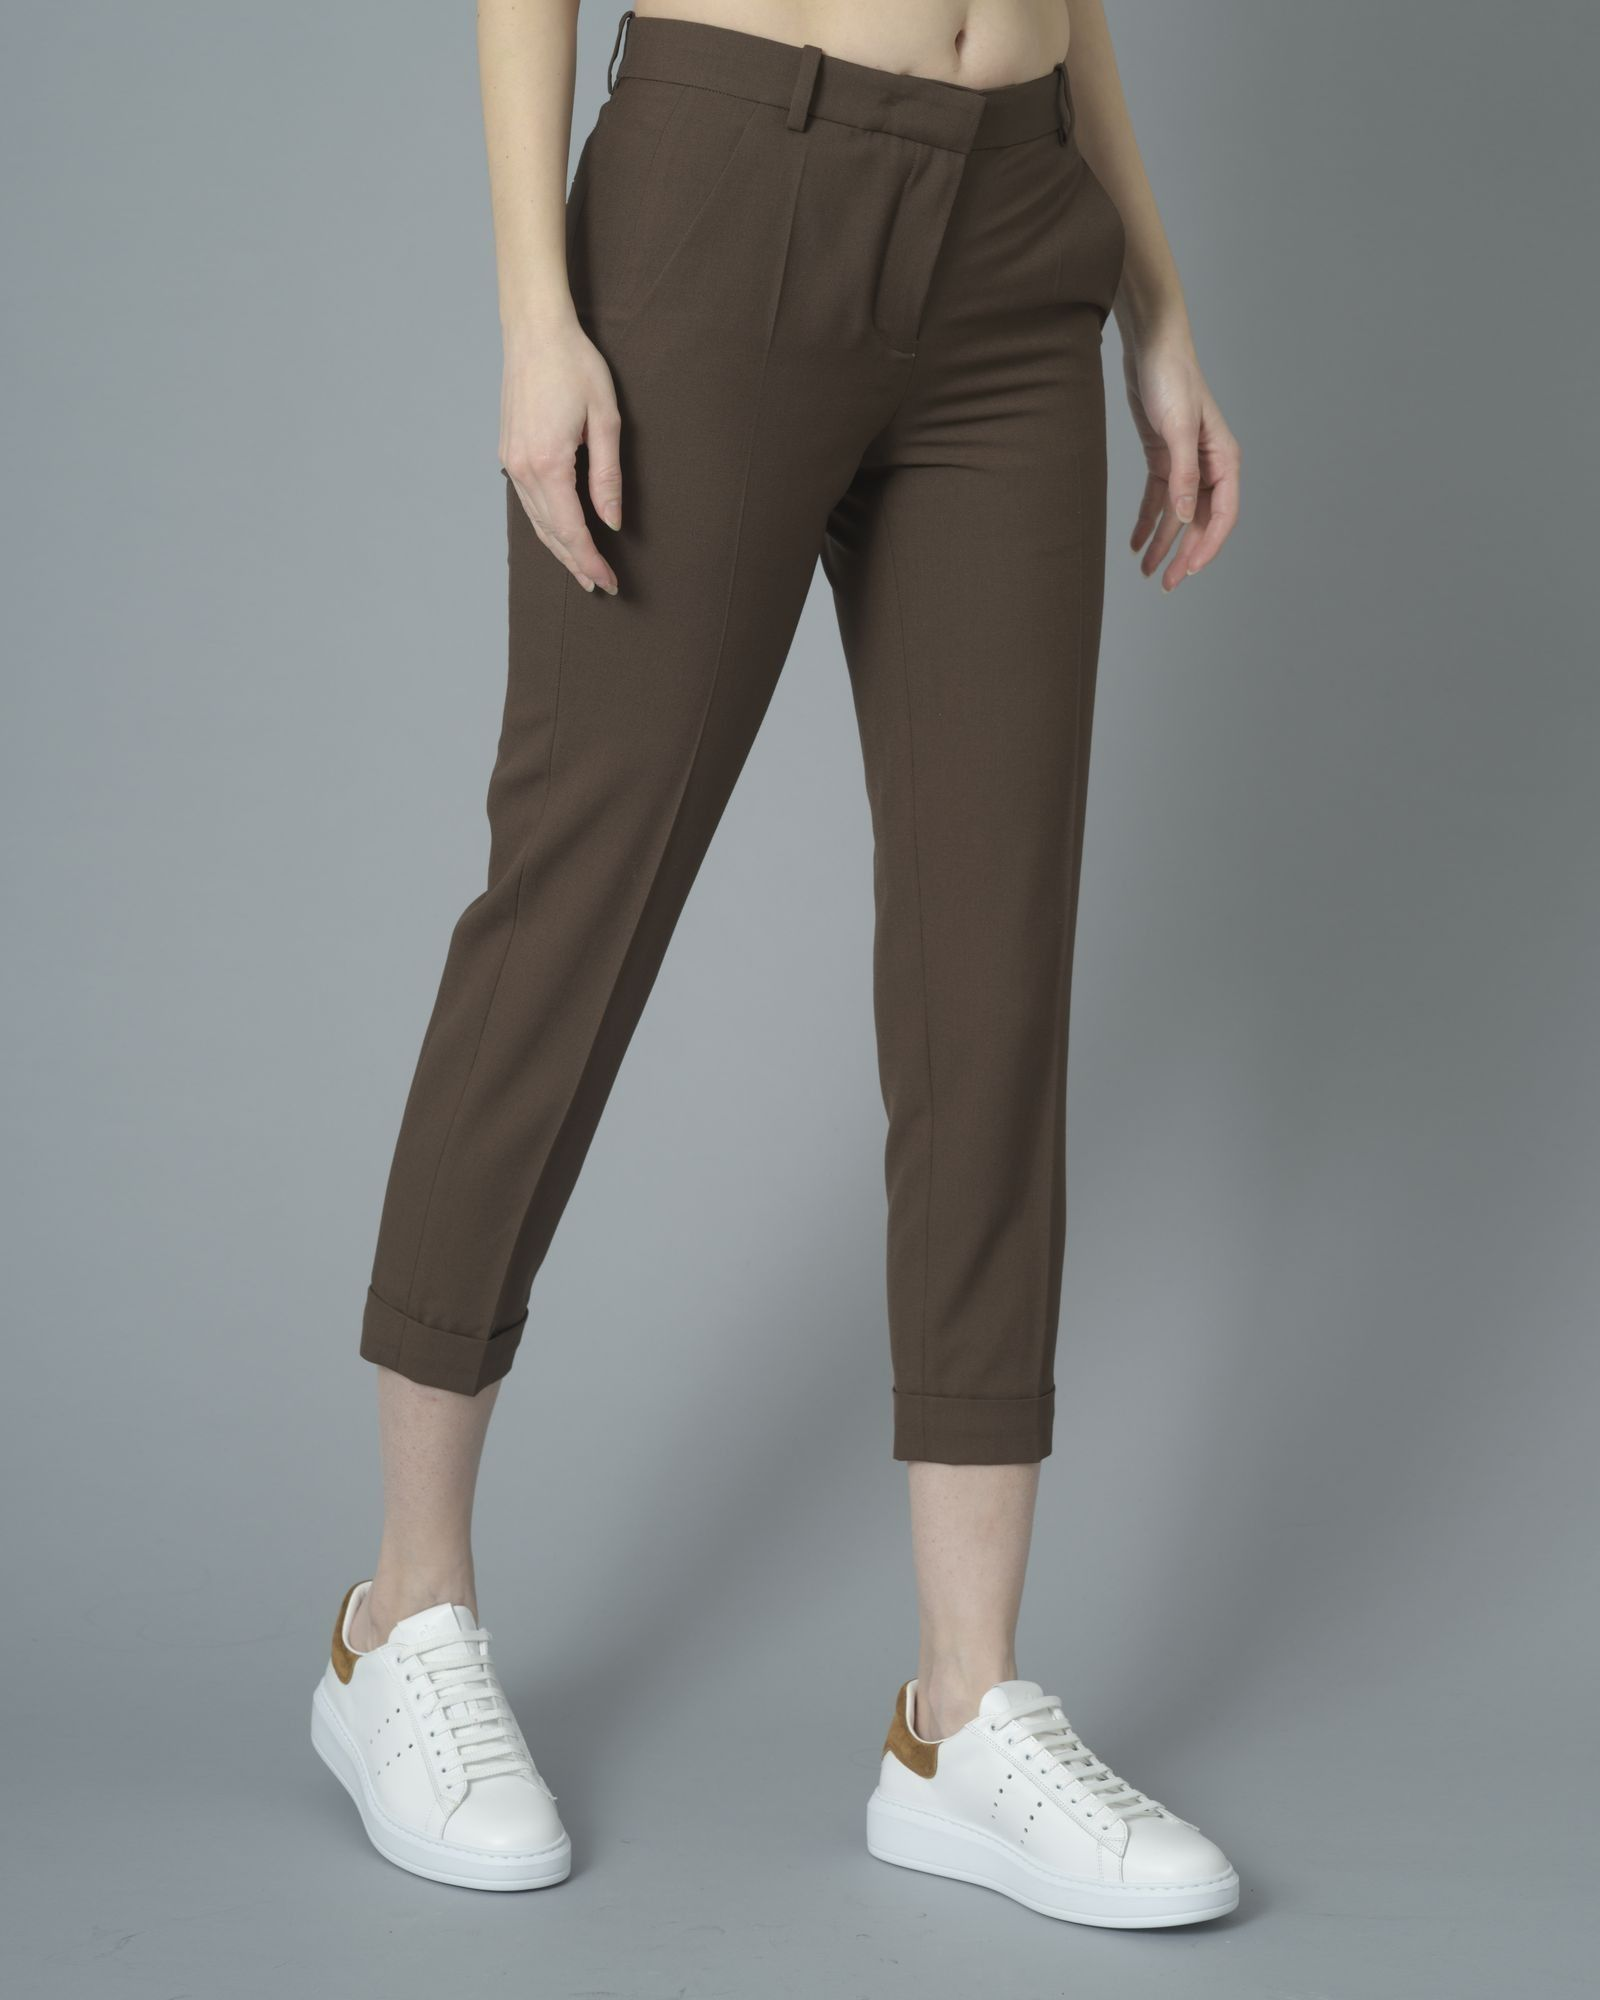 Pantalon droit 7/8 marron Carven